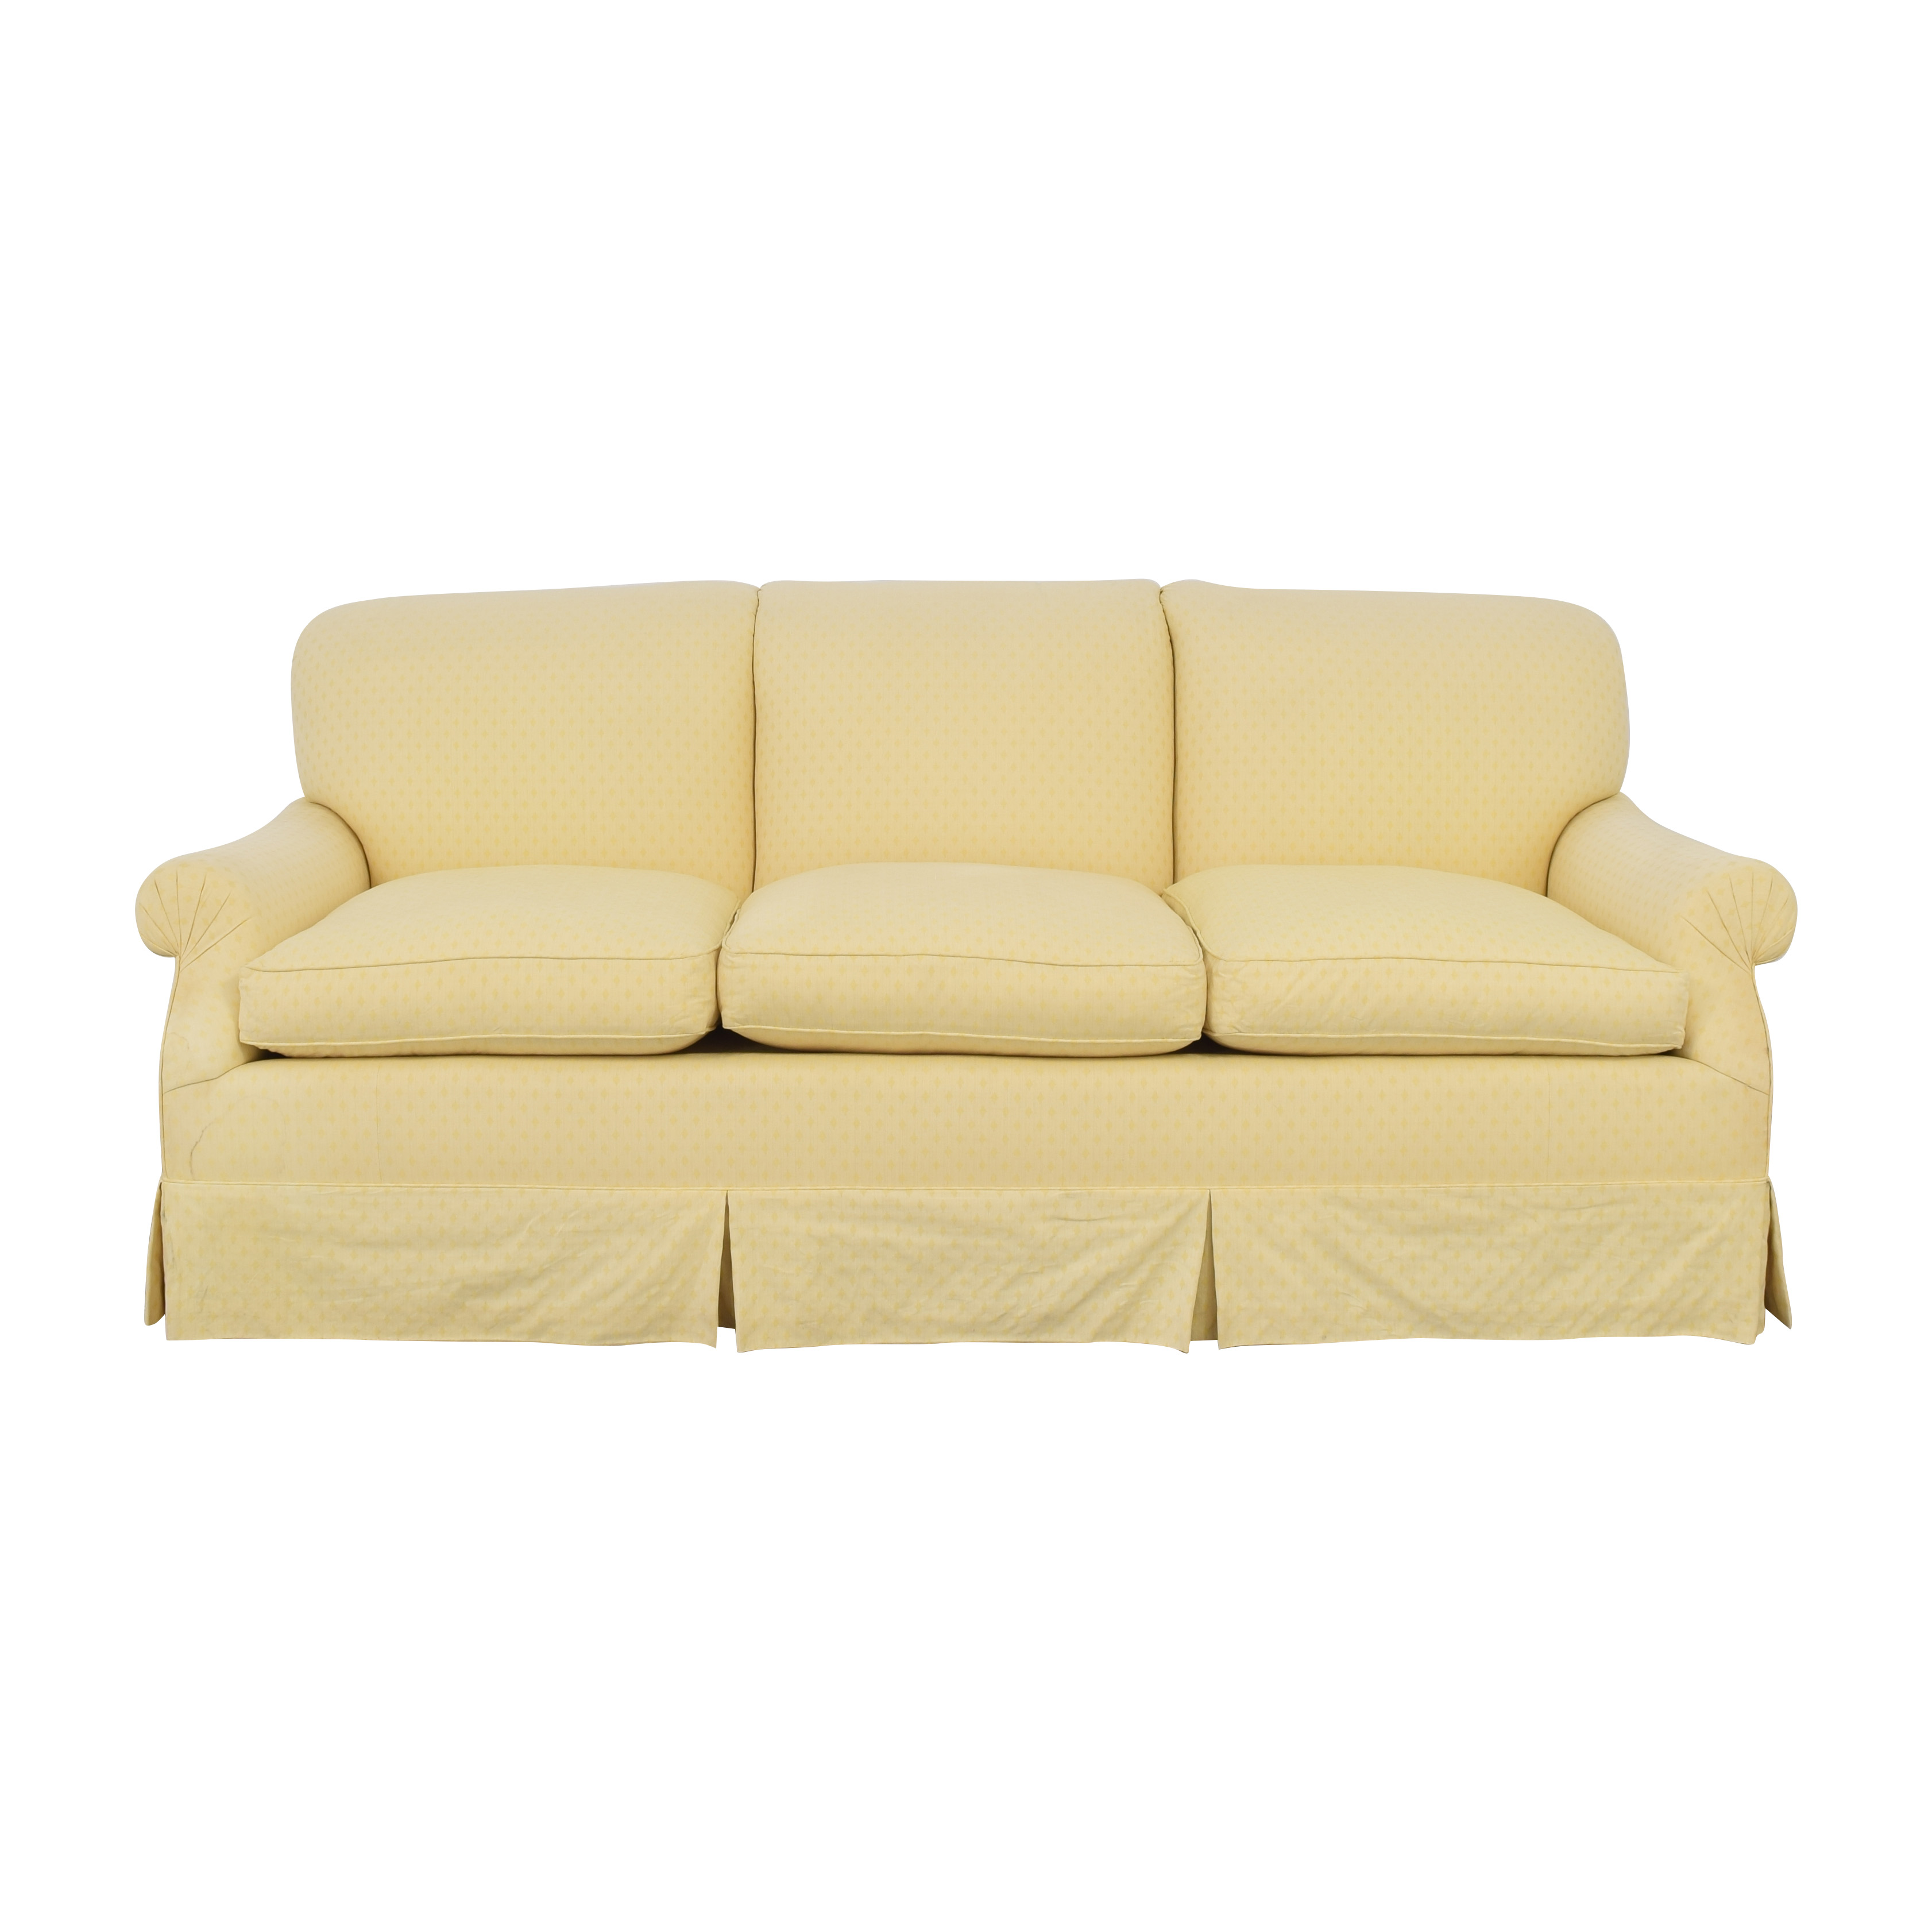 Albert Menin Interiors Albert Menin Skirted Three Seat Sofa dimensions